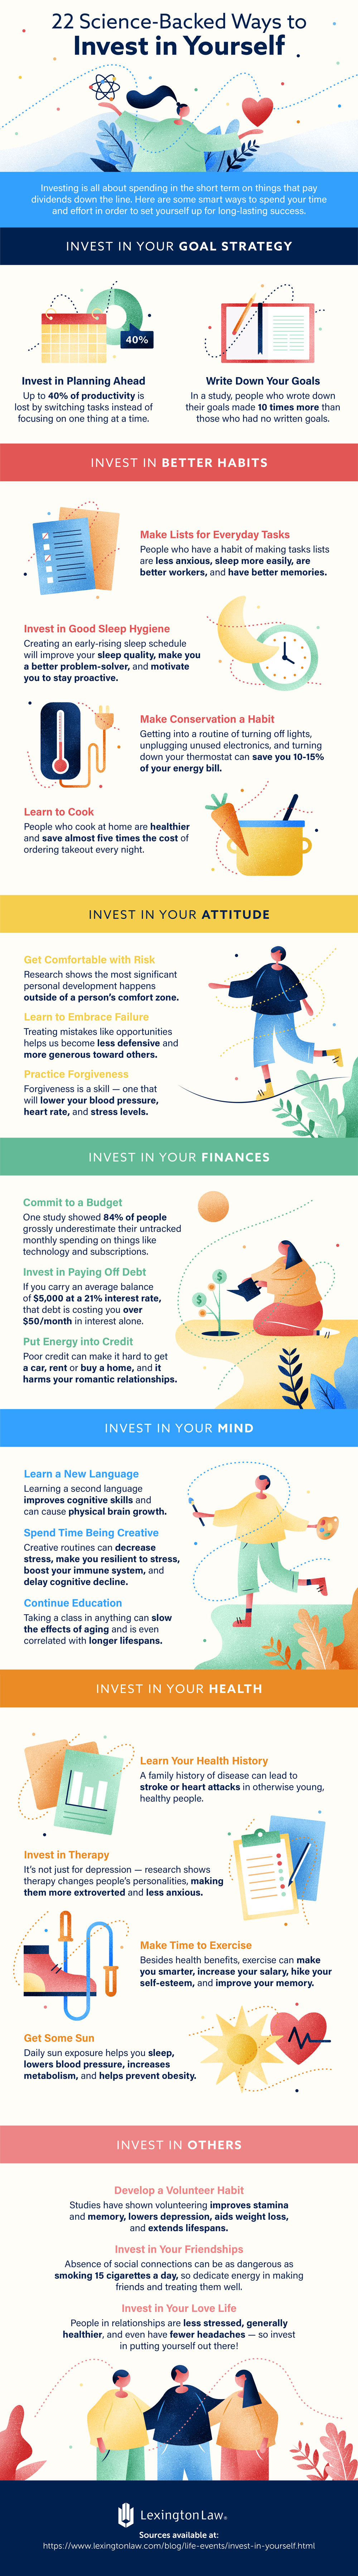 Science-backed ways to Invest in Yourself [Infographic]   ecogreenlove